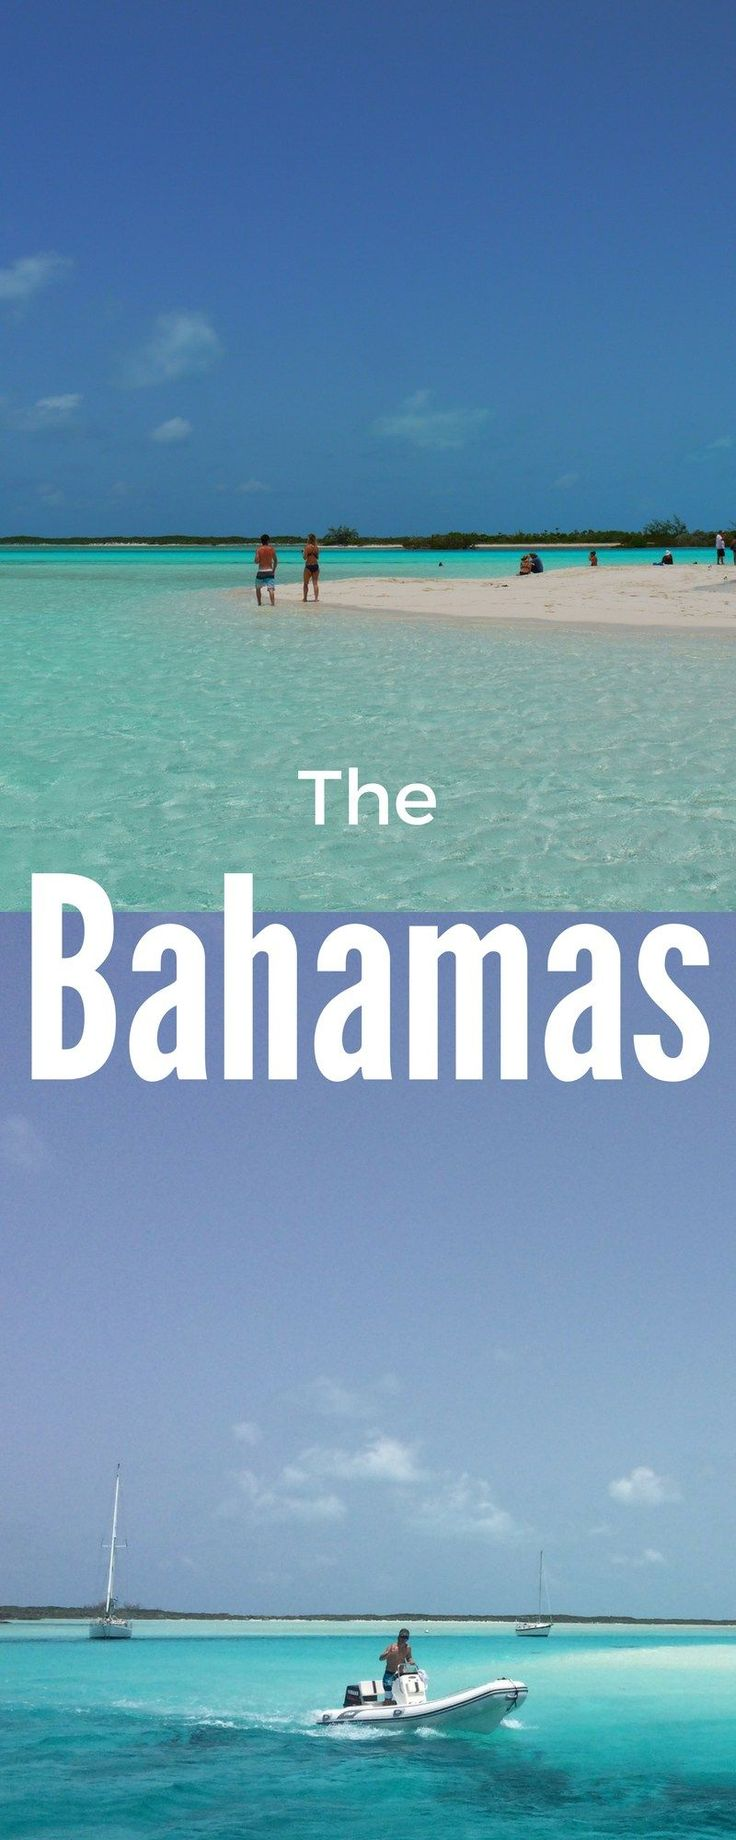 Top attractions and tips to plan your trip to the Bahamas, including where to stay and islands to visit.